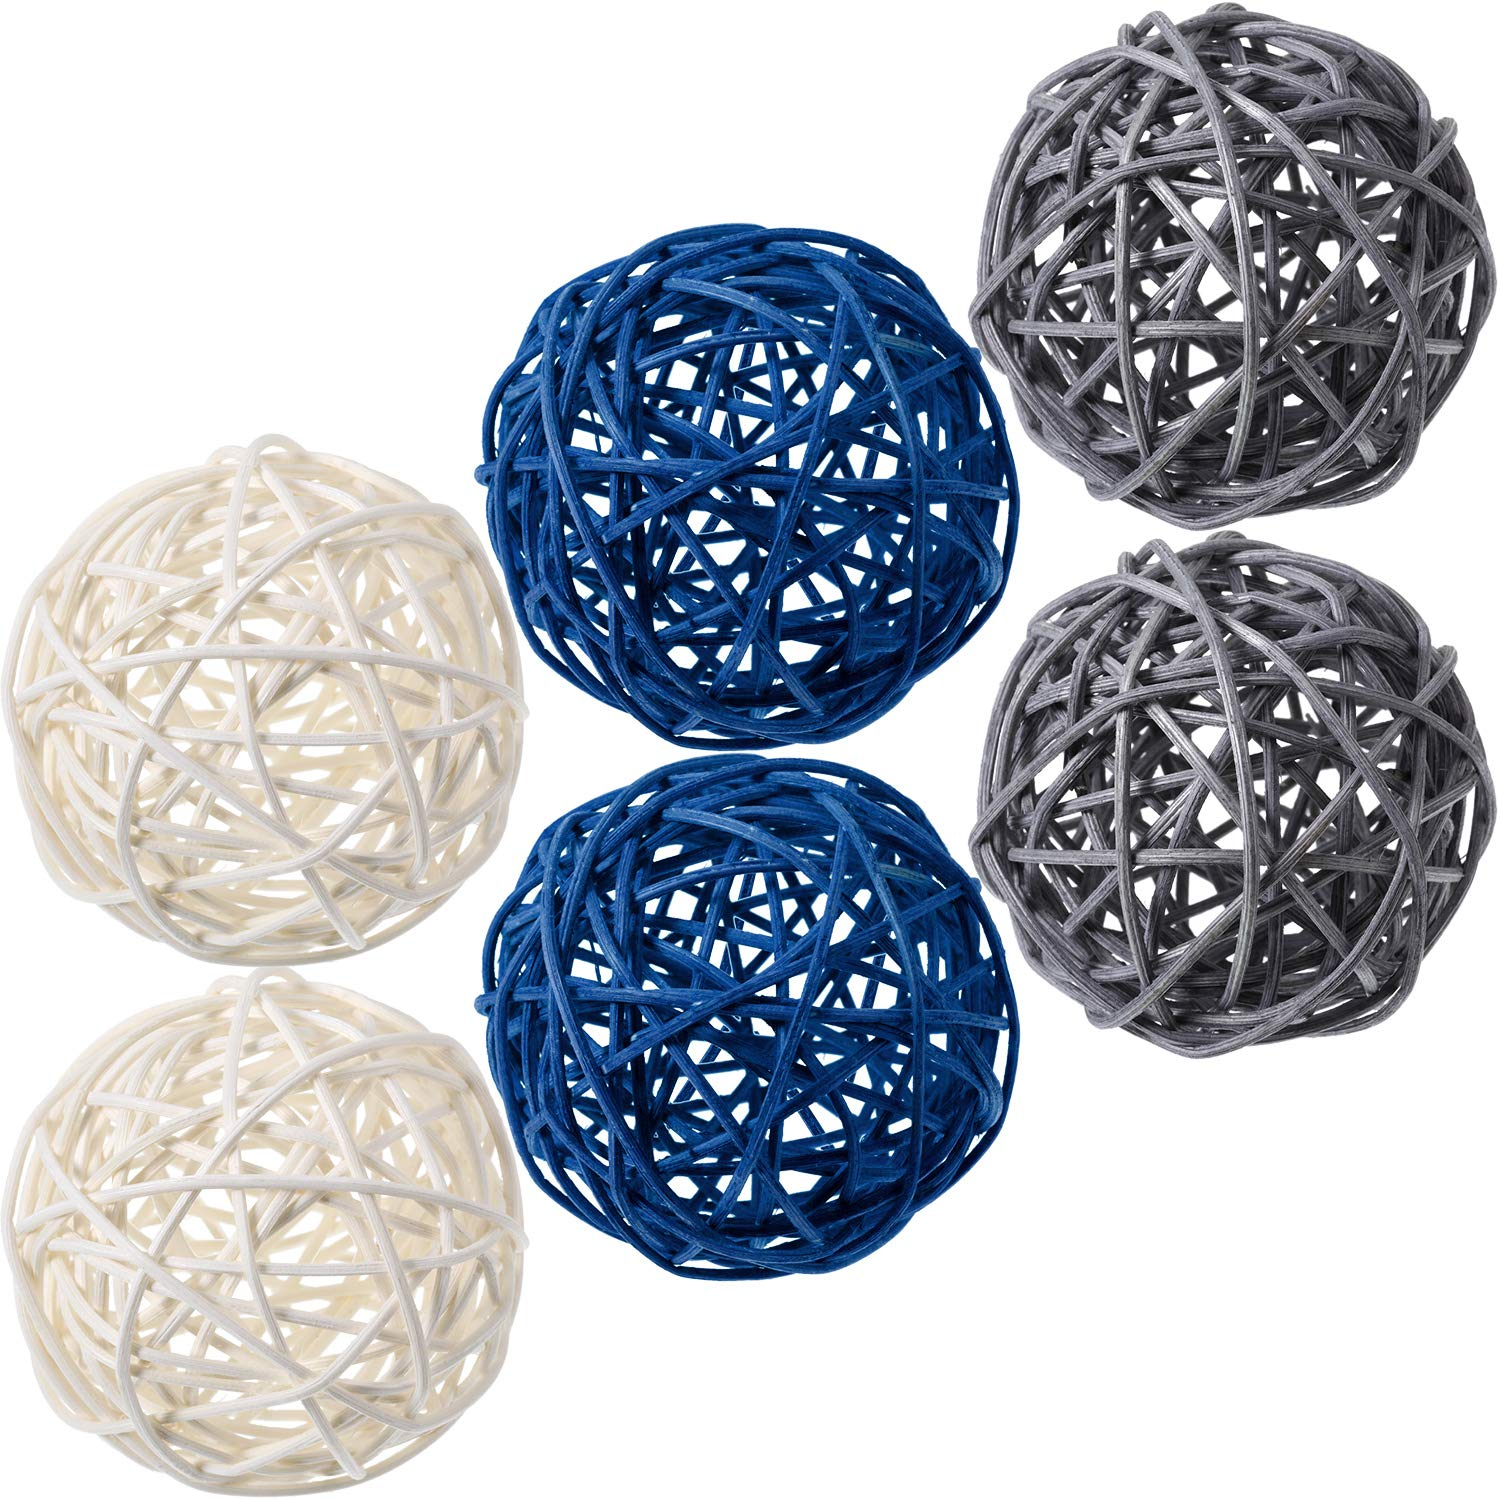 Yaomiao 6 Pieces Wicker Rattan Balls Decorative Orbs Vase Fillers for Craft Project, Wedding Table Decoration, Themed Party, Baby Shower, Aromatherapy Accessories (Blue Gray White)